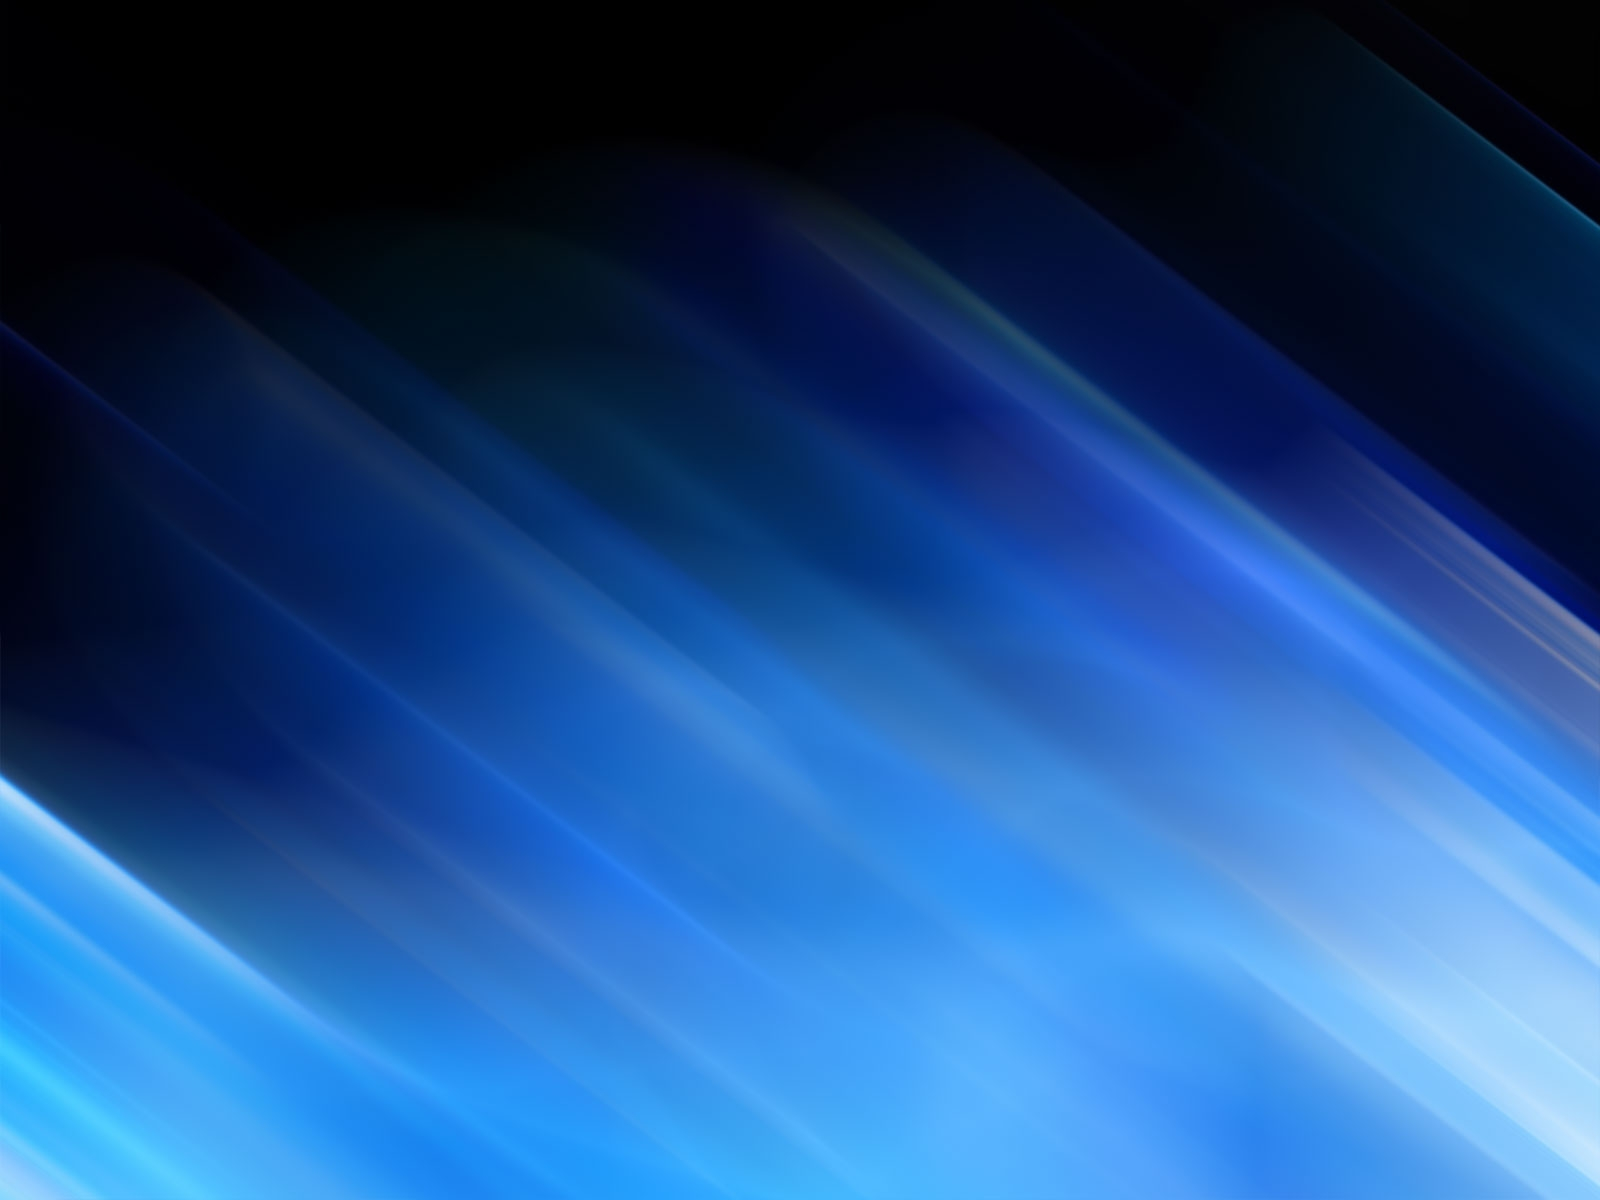 Info Wallpapers: hd wallpaper abstract blue